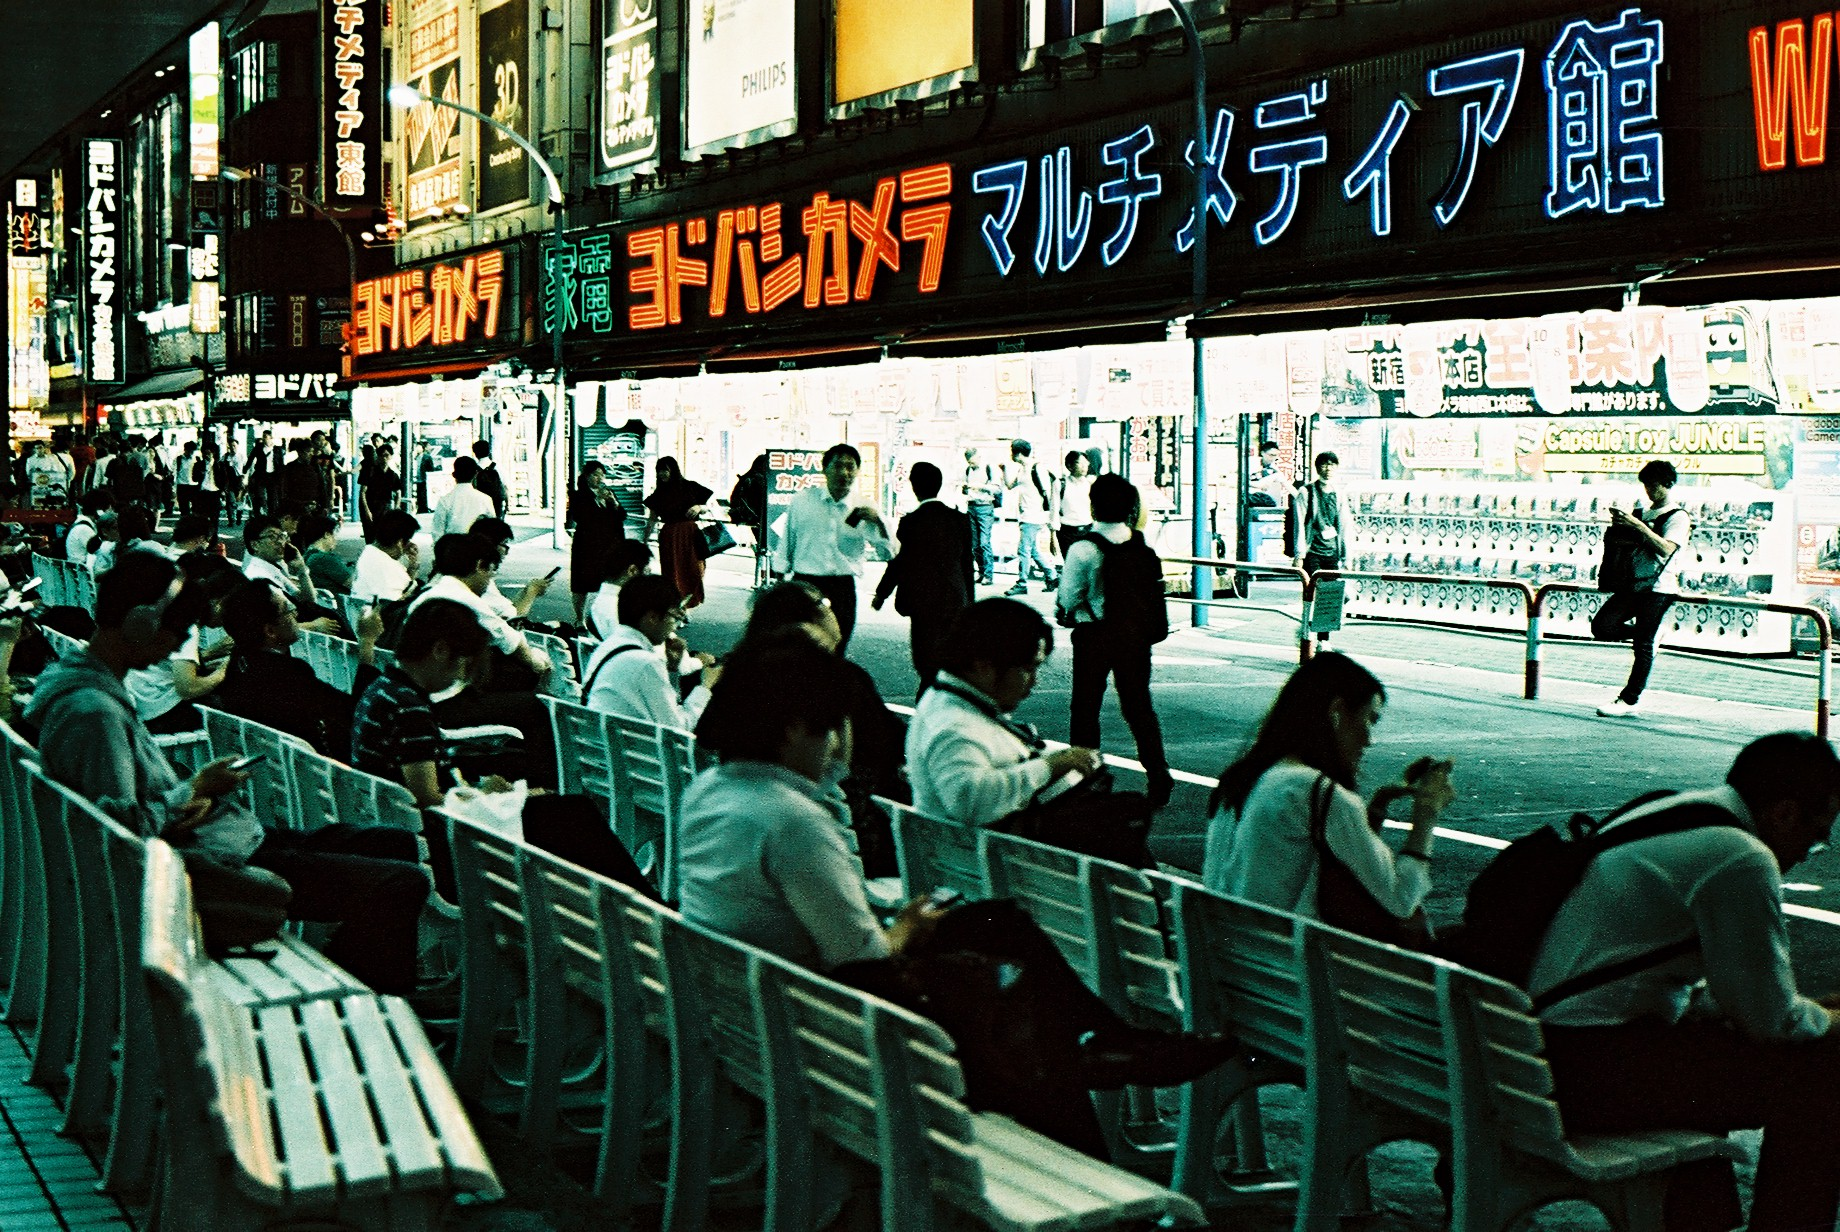 LomoChrome Metropolis test shot